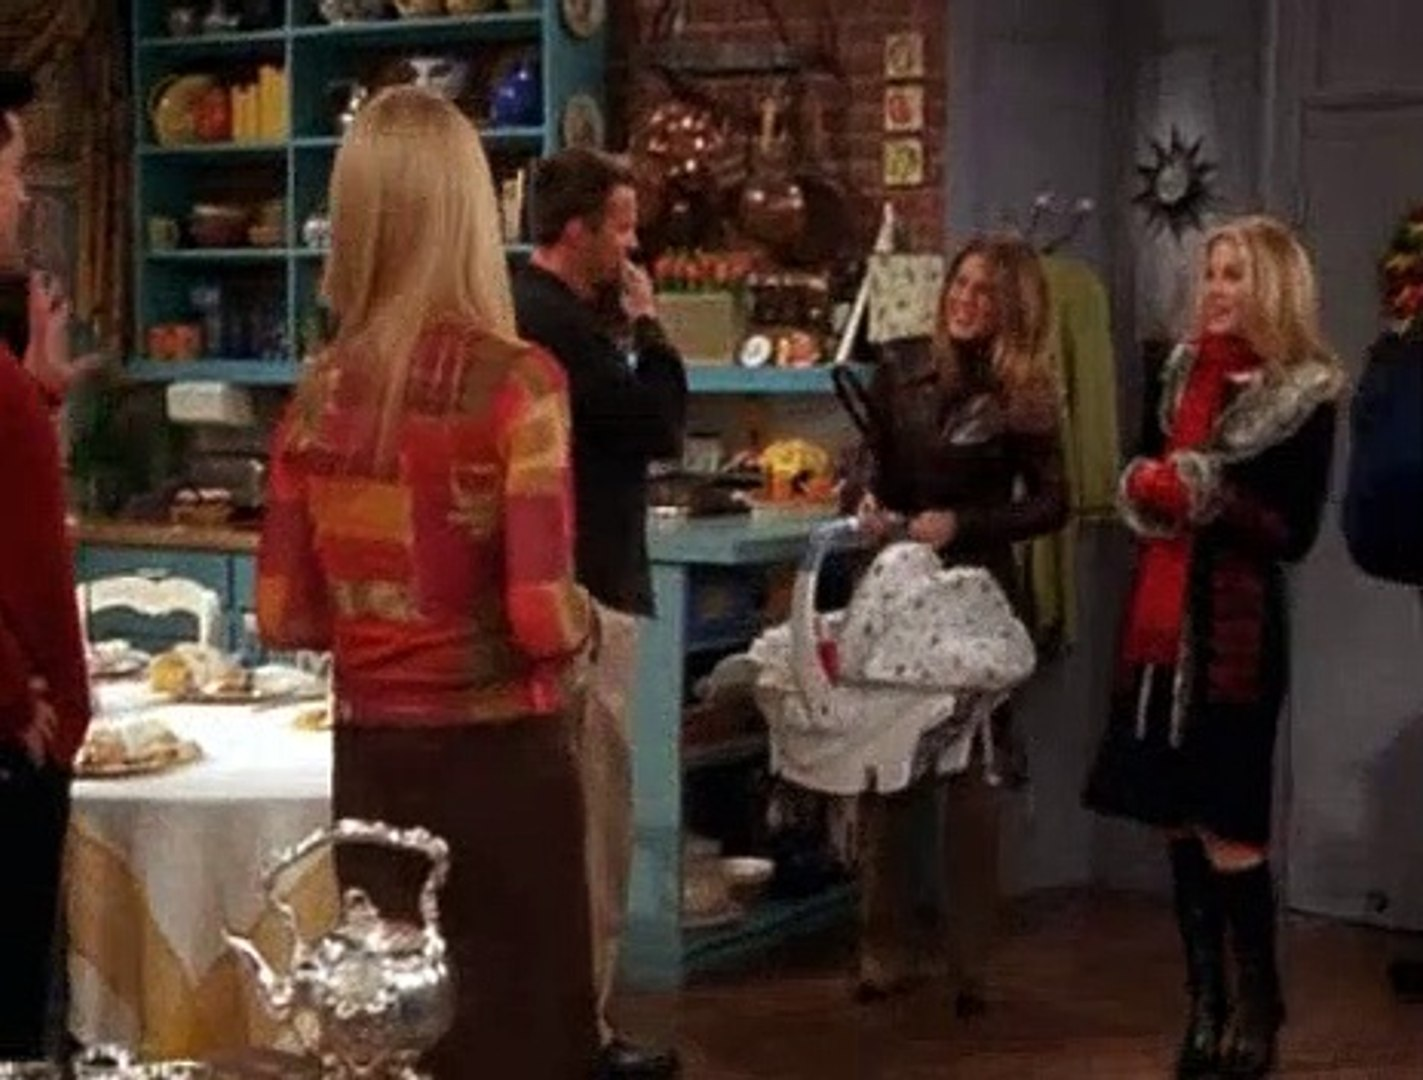 Friends S09E08 The One with Rachel's Other Sister